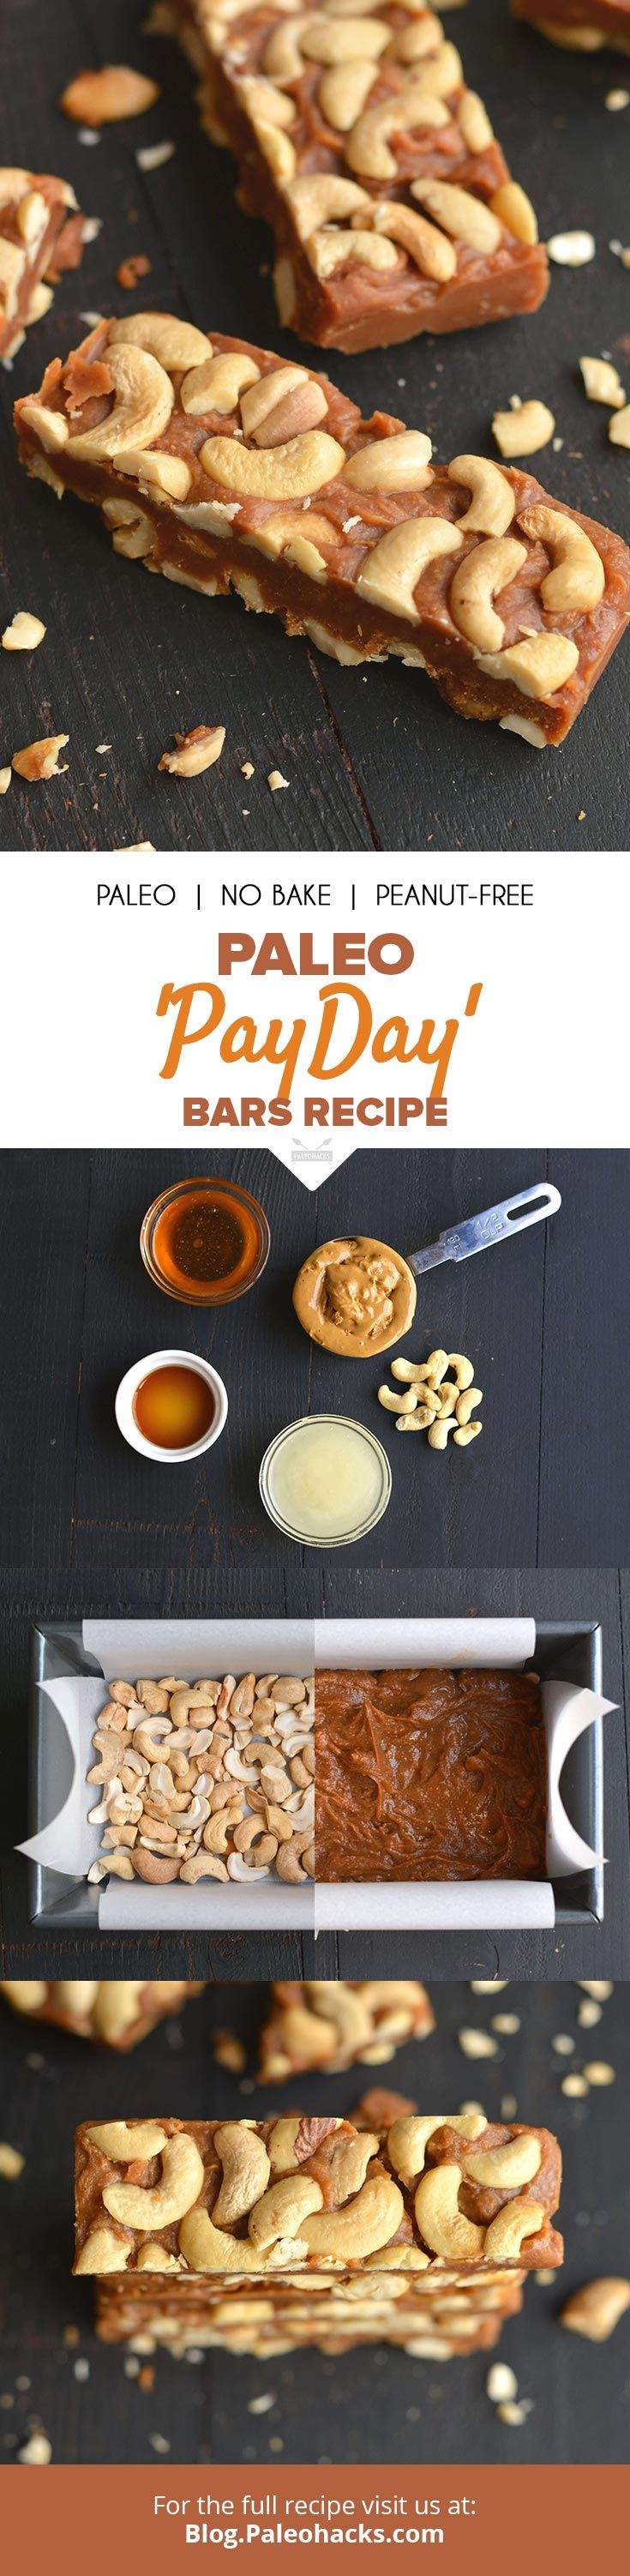 "Nutty Paleo ""Payday"" Bars are made with cashews and creamy nut butter for a salty, chewy treat. Get the full recipe here: http://paleo.co/PaydayBars"